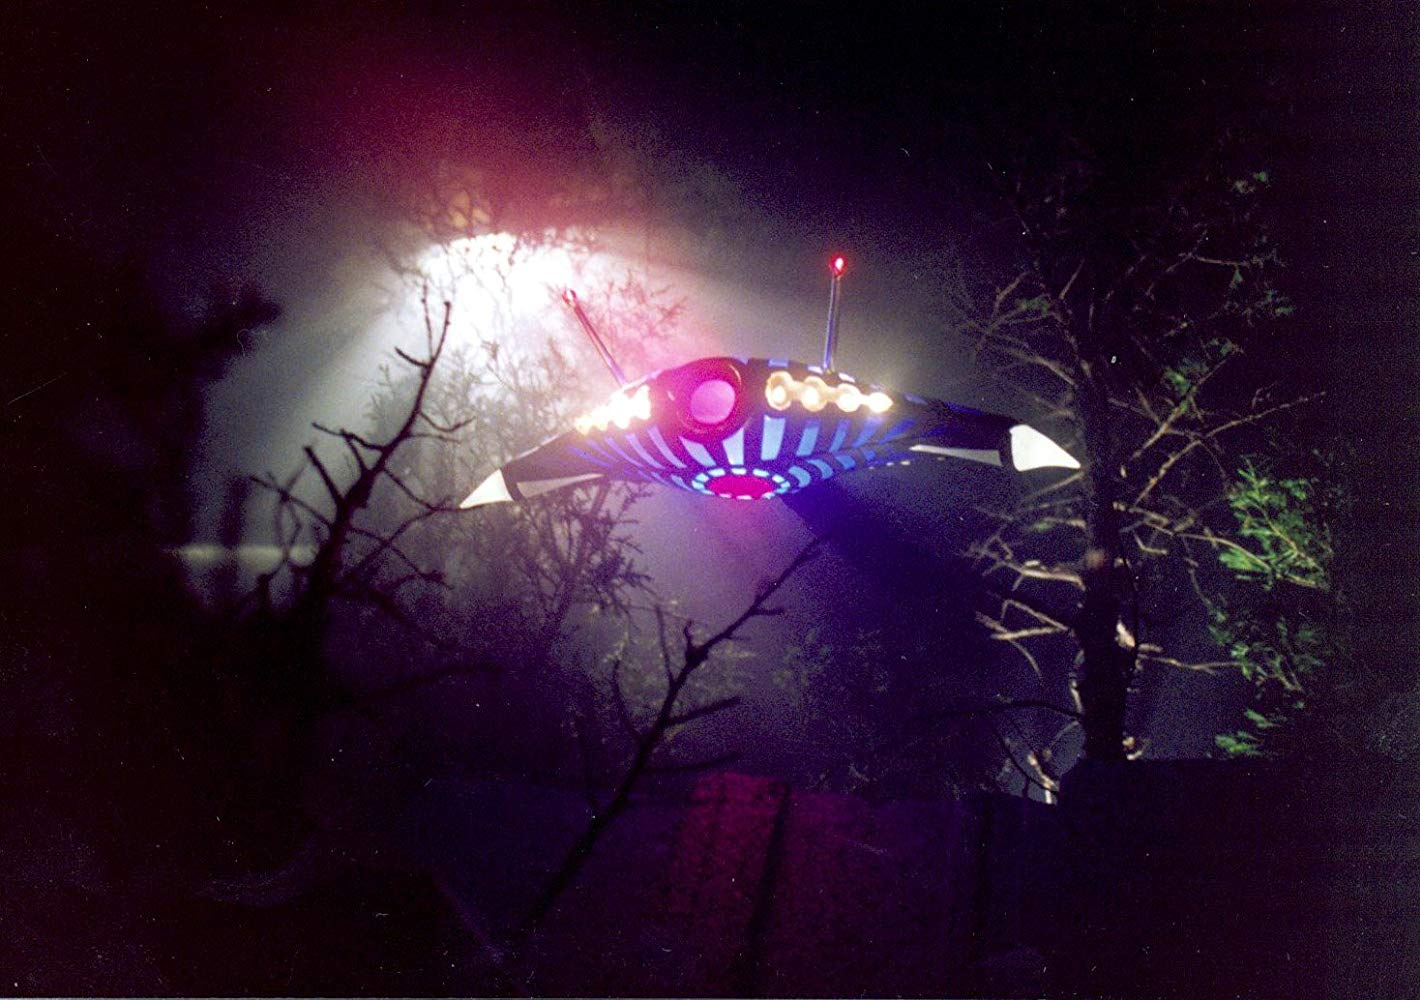 Appearance of the UFO in Invader (1992)